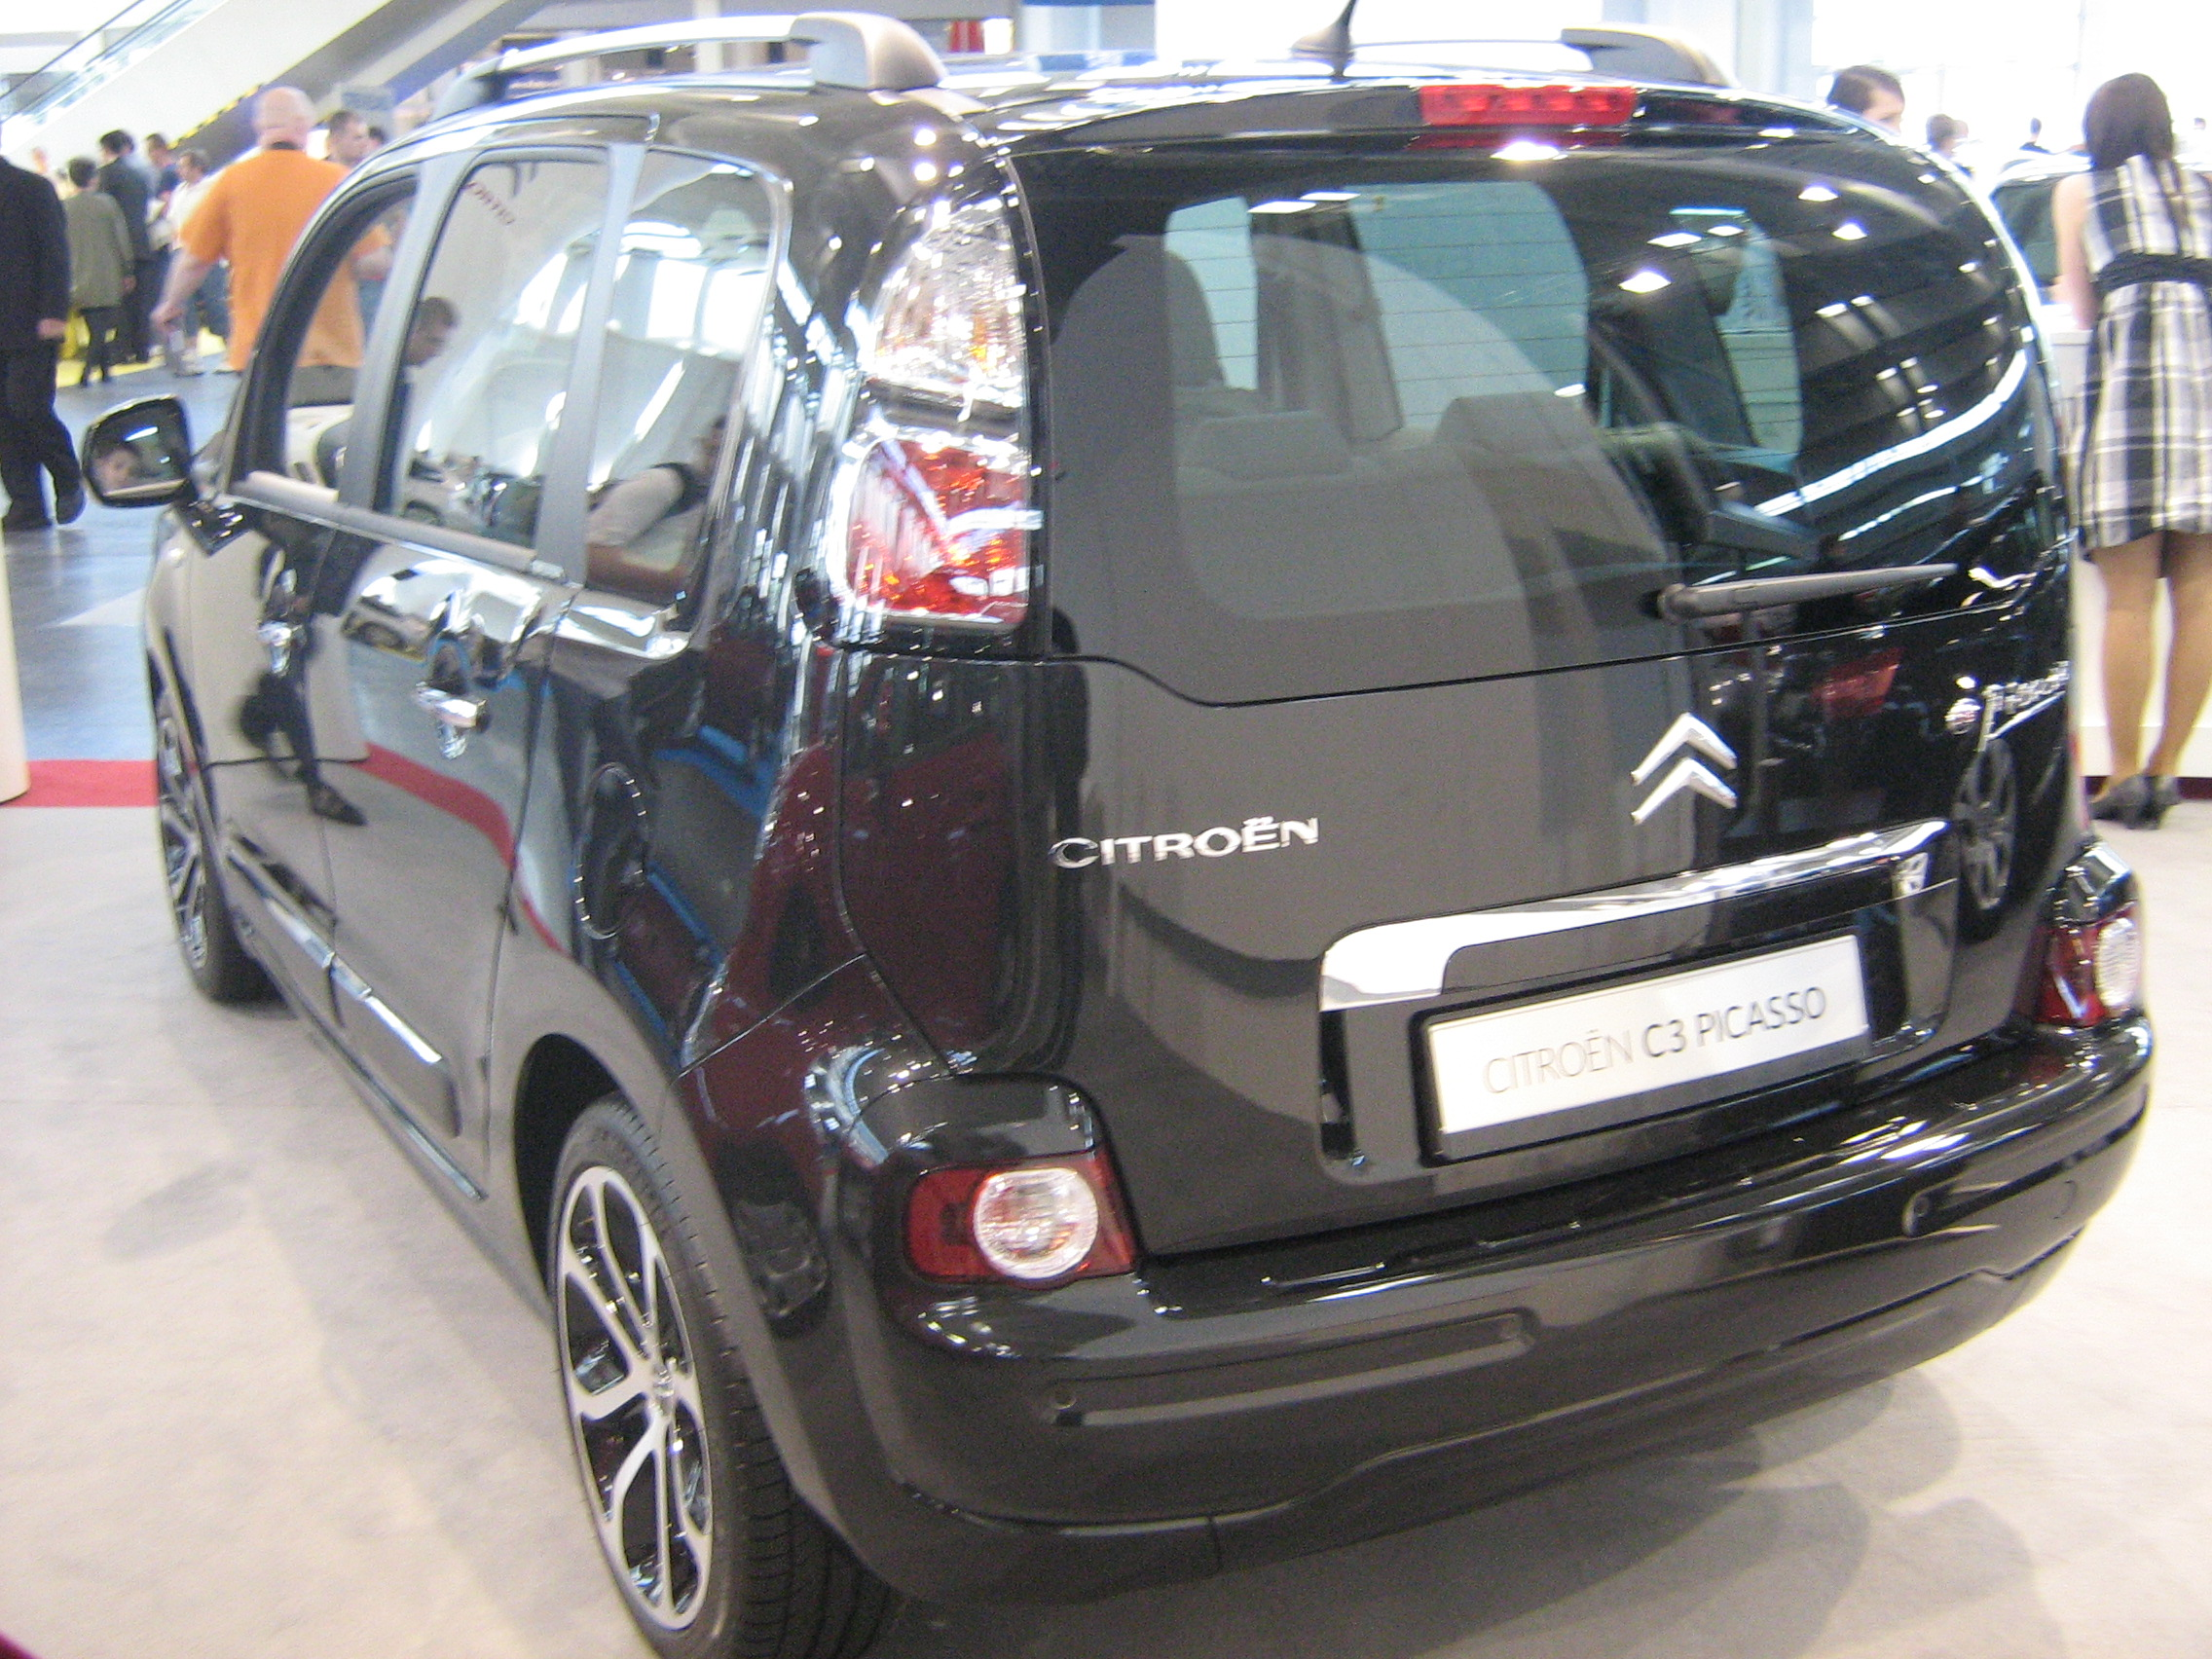 file citroen c3 picasso rear psm wikimedia commons. Black Bedroom Furniture Sets. Home Design Ideas